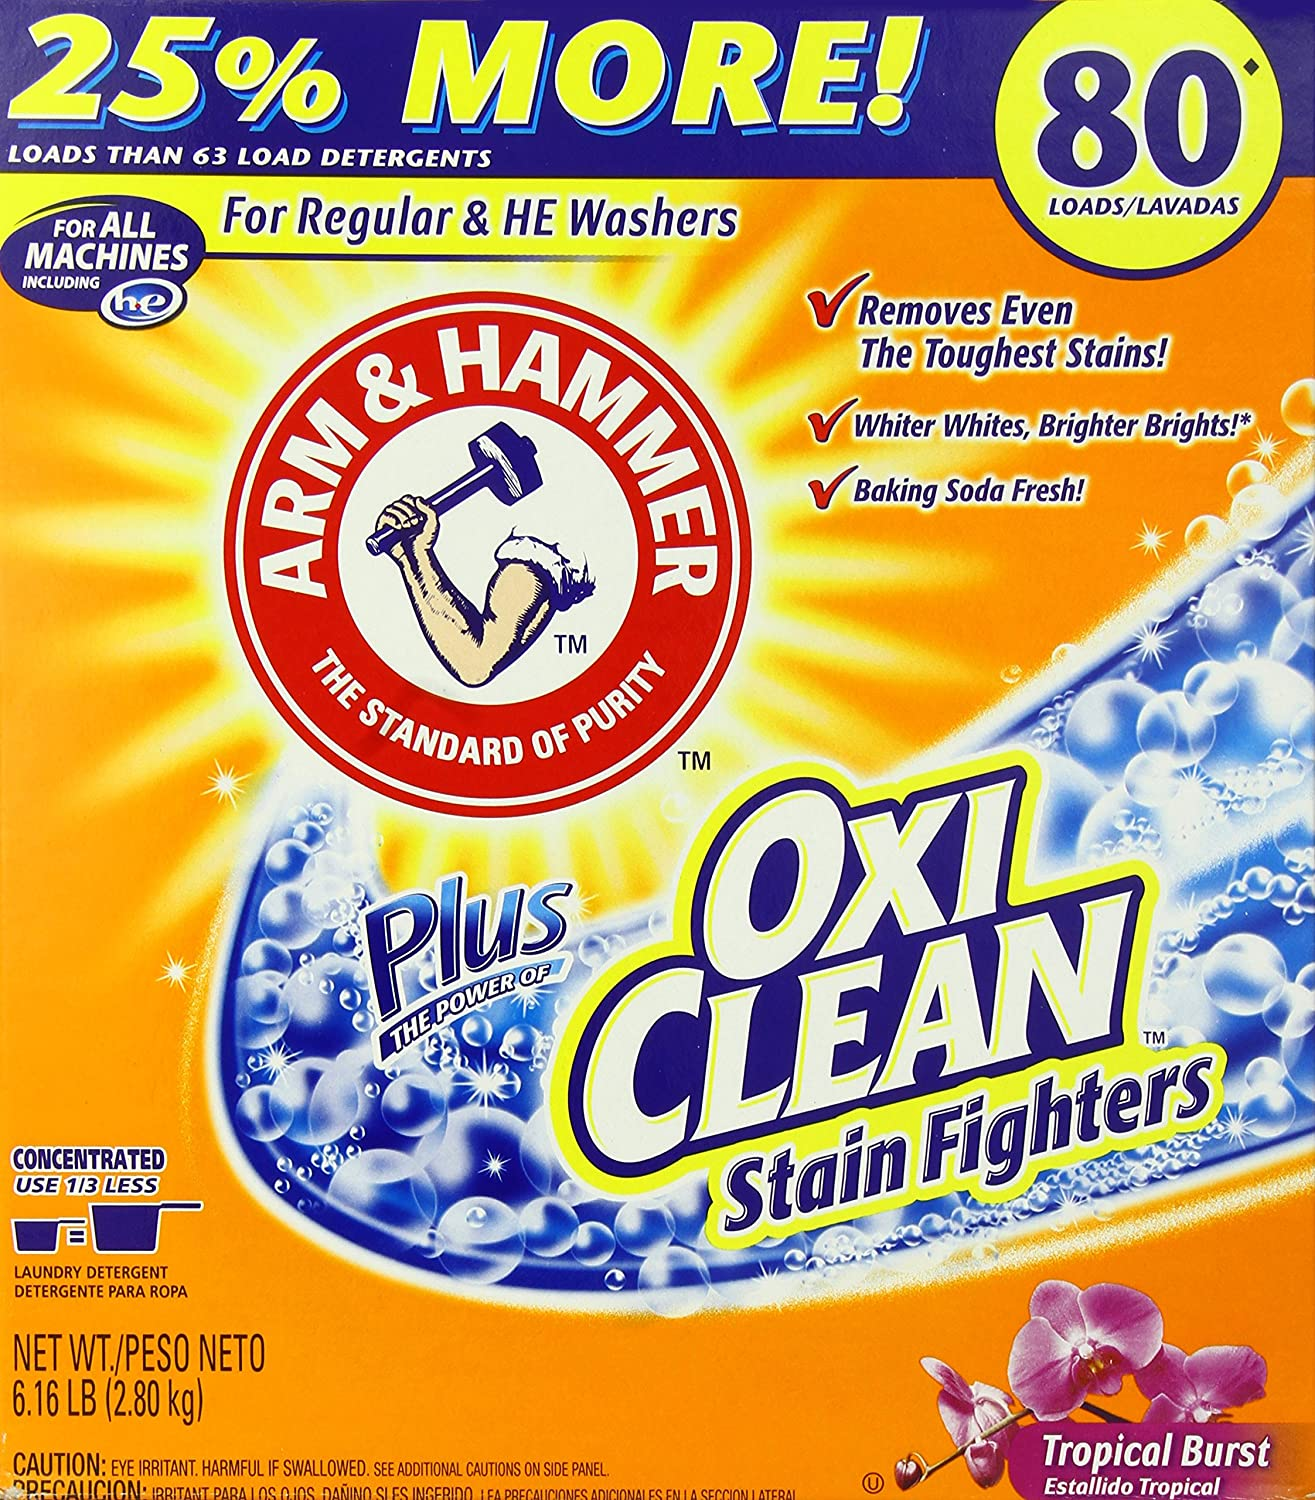 Is arm and hammer powder laundry detergent he - Amazon Com Arm Hammer Laundry Detergent Plus Oxiclean Tropical Burst 6 16 Lbs Health Personal Care